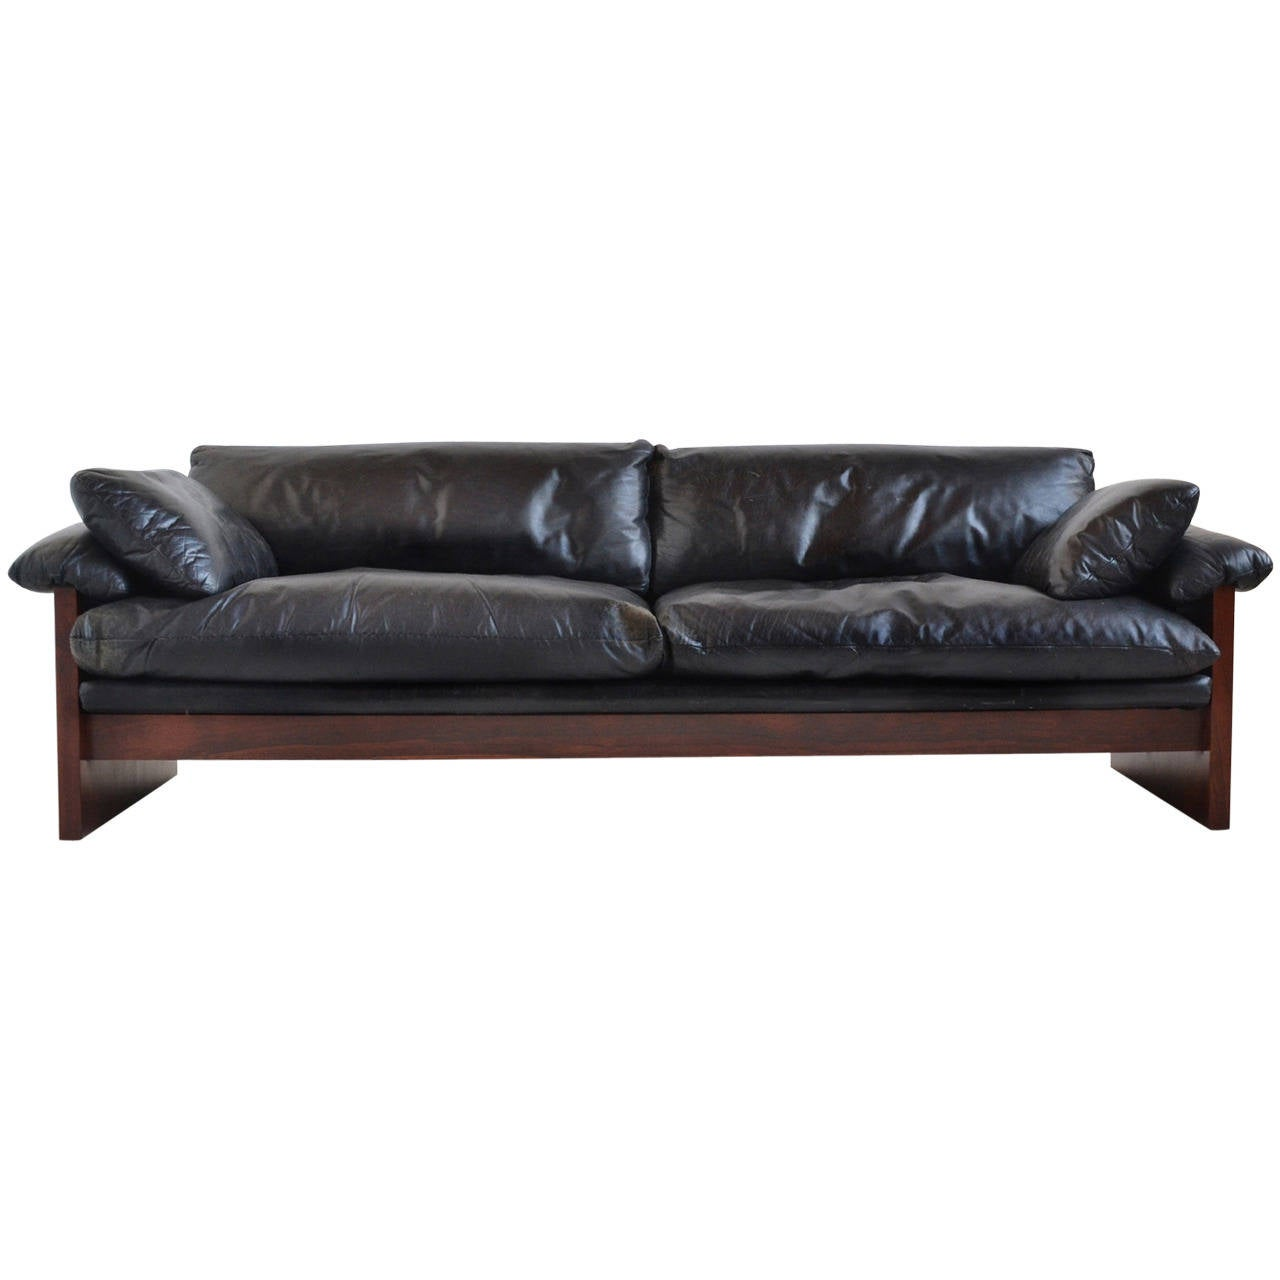 down filled leather sectional sofa dfs sofas belfast rosewood with cushions at 1stdibs